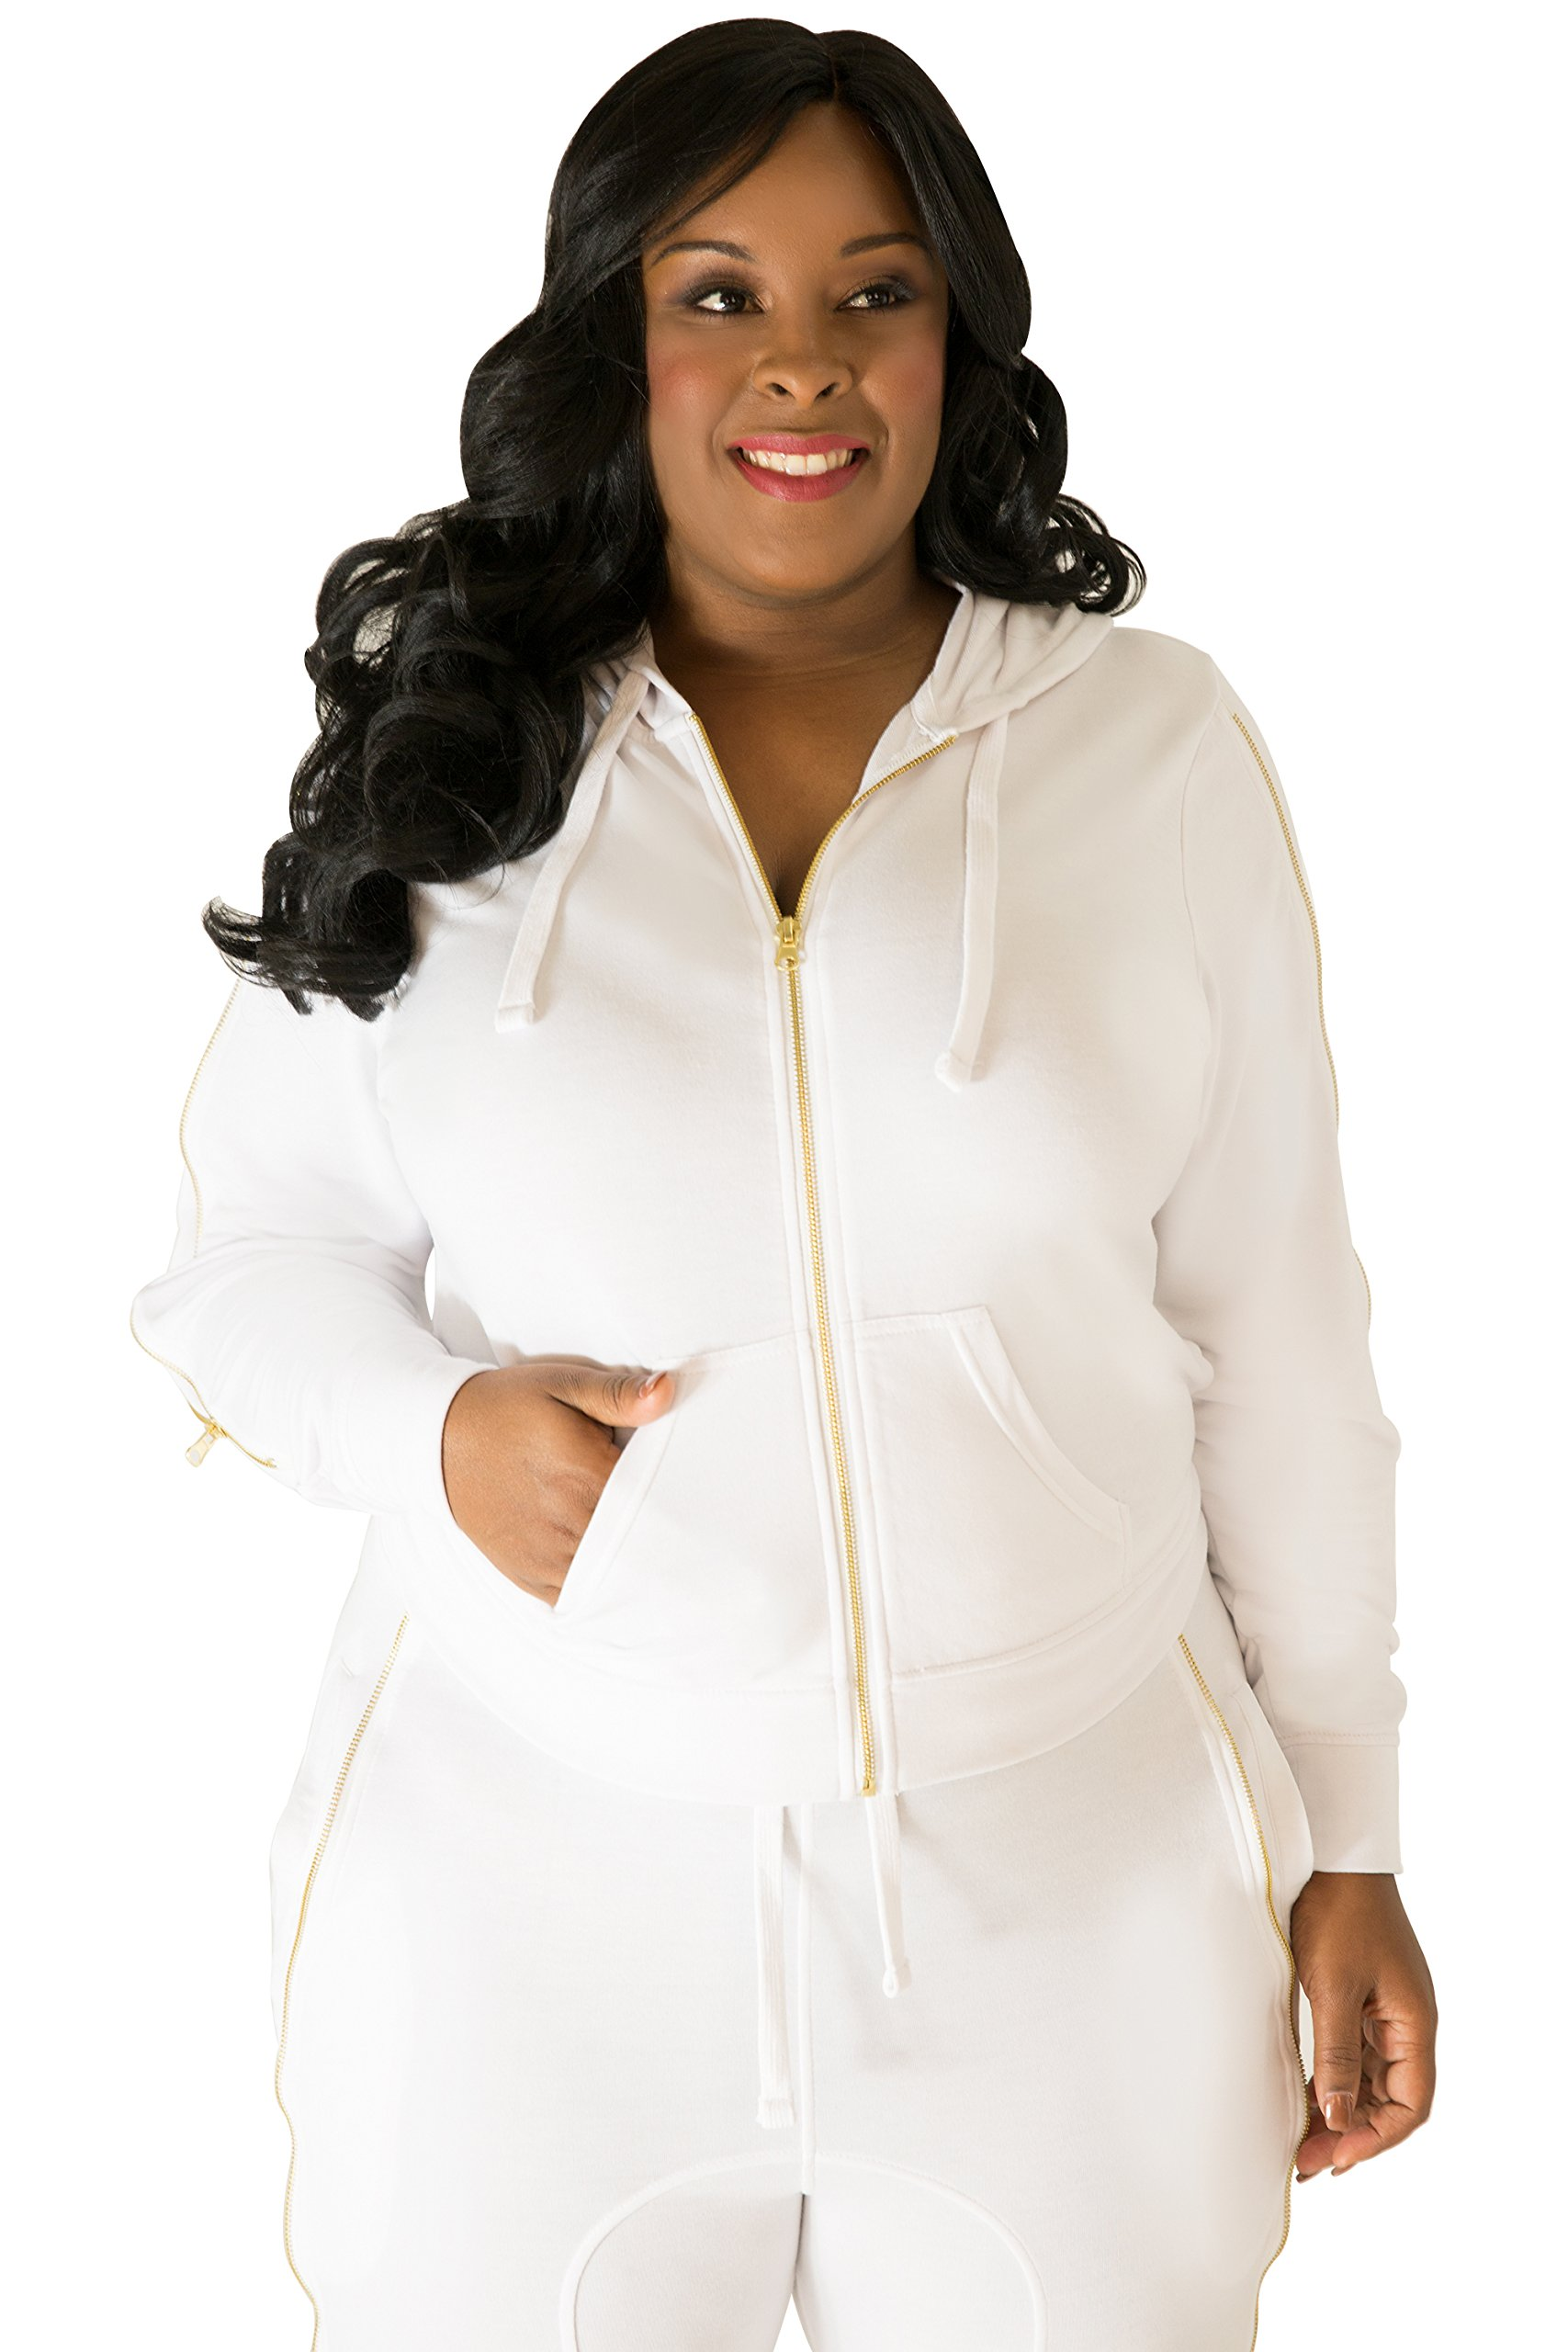 Poetic Justice Plus Size Women's Curvy Fit White French Terry Gold Zip Wrap Tie Hoodie Size 3X